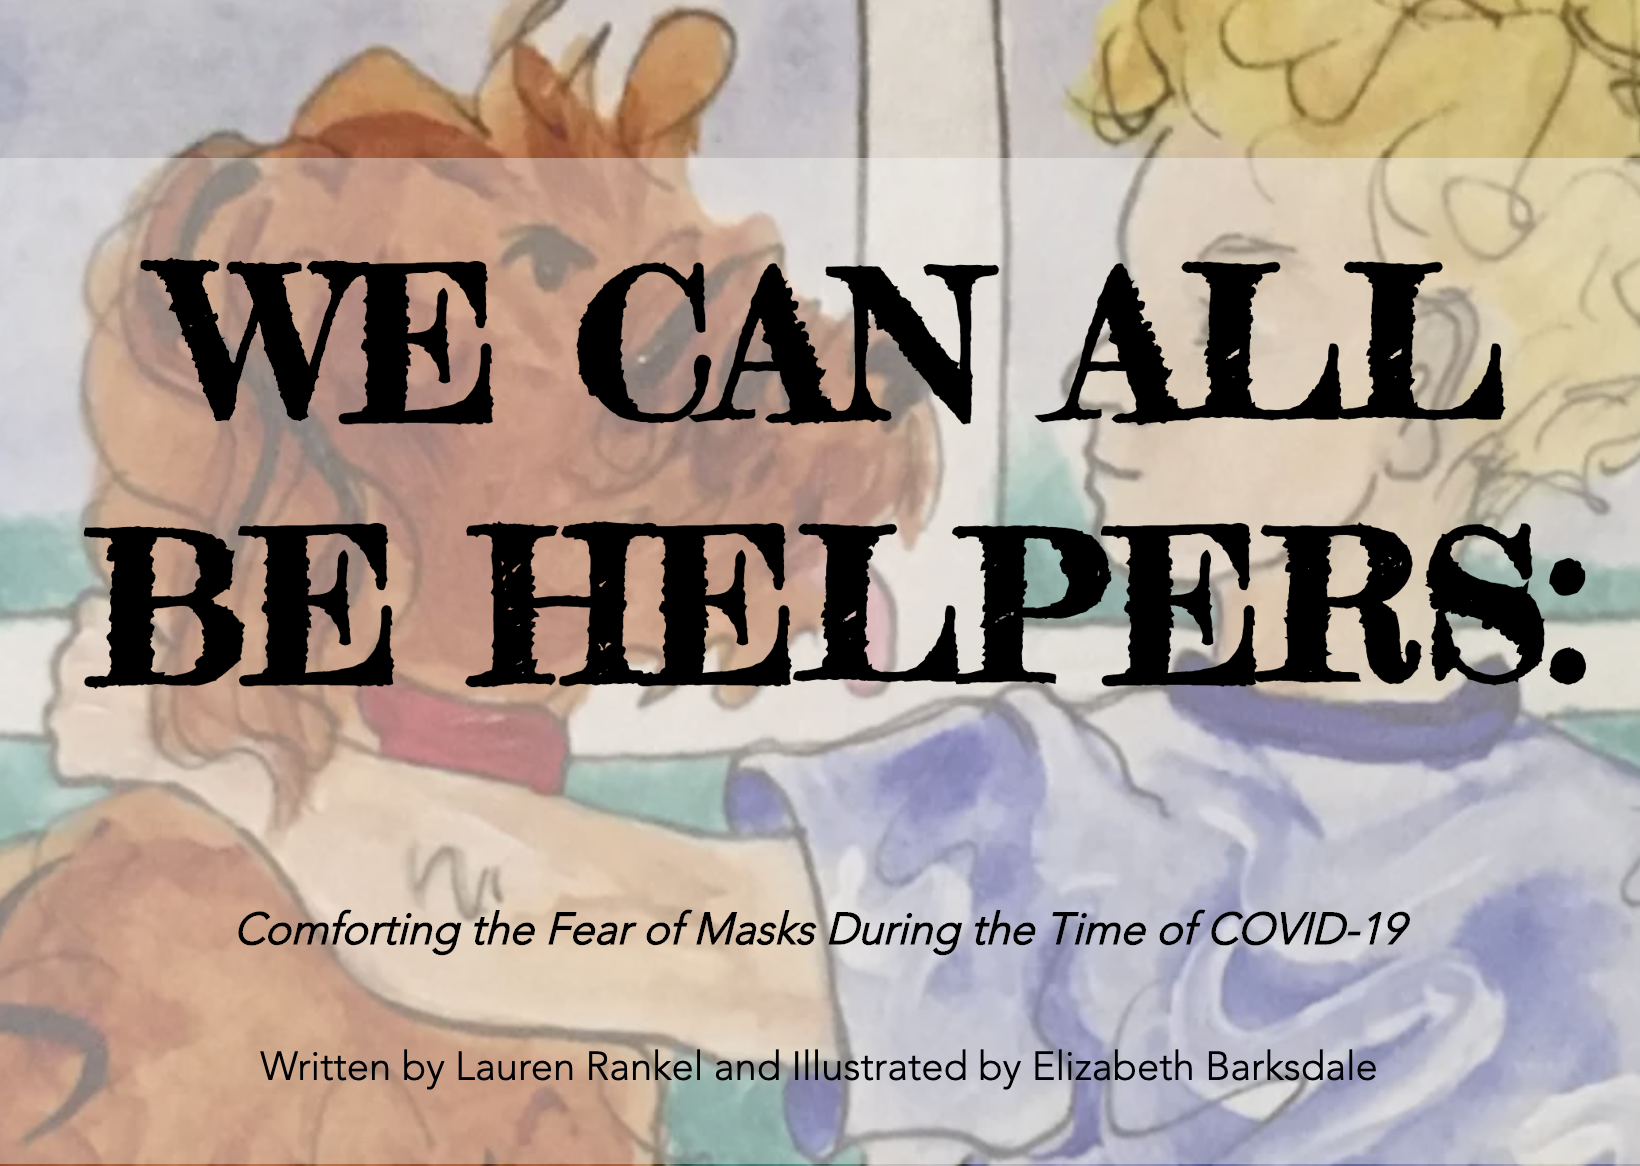 We Can All Be Helpers: Comforting the Fear of Masks During the Time of COVID-19